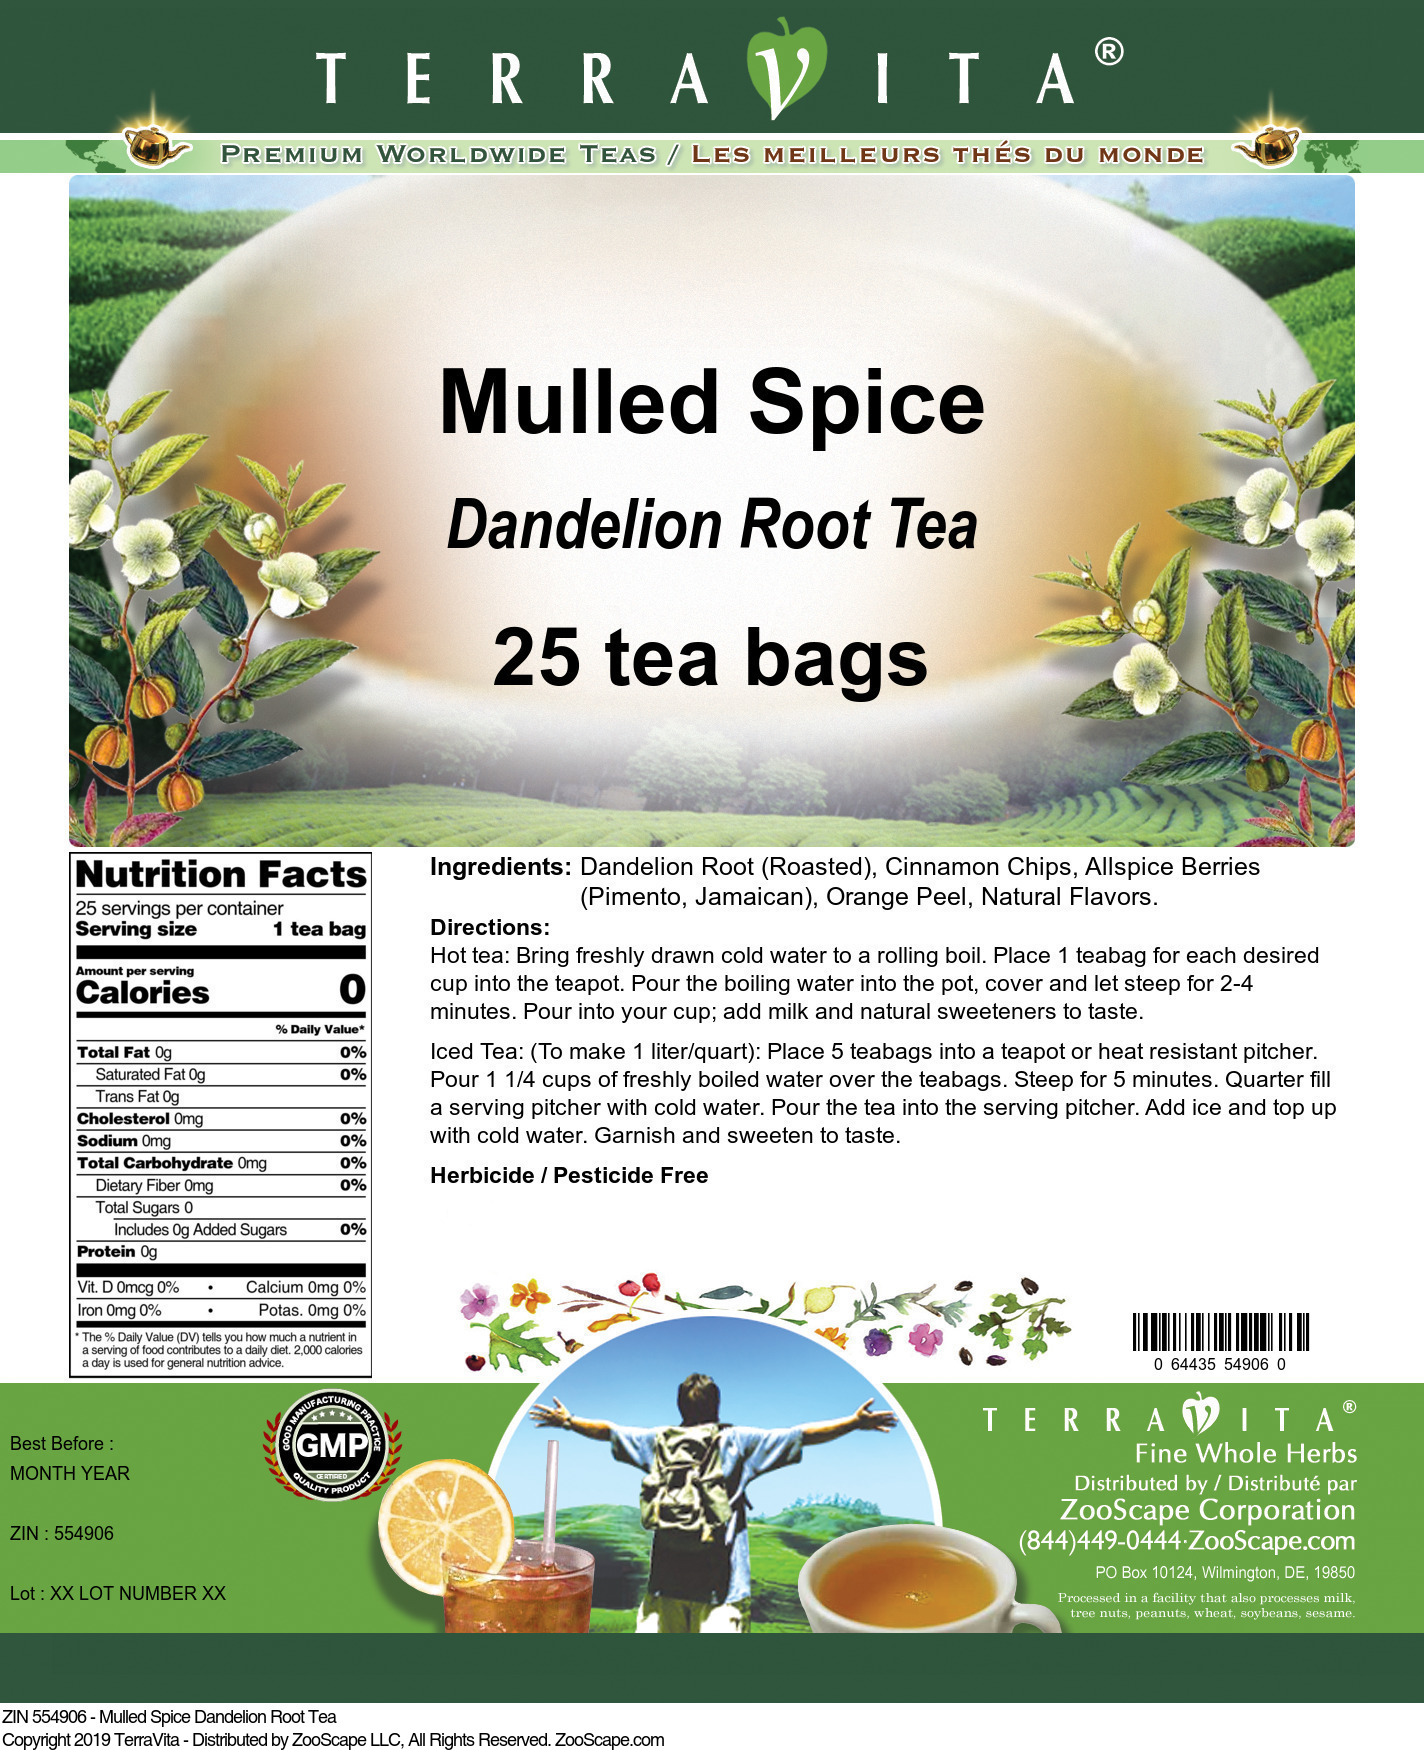 Mulled Spice Dandelion Root